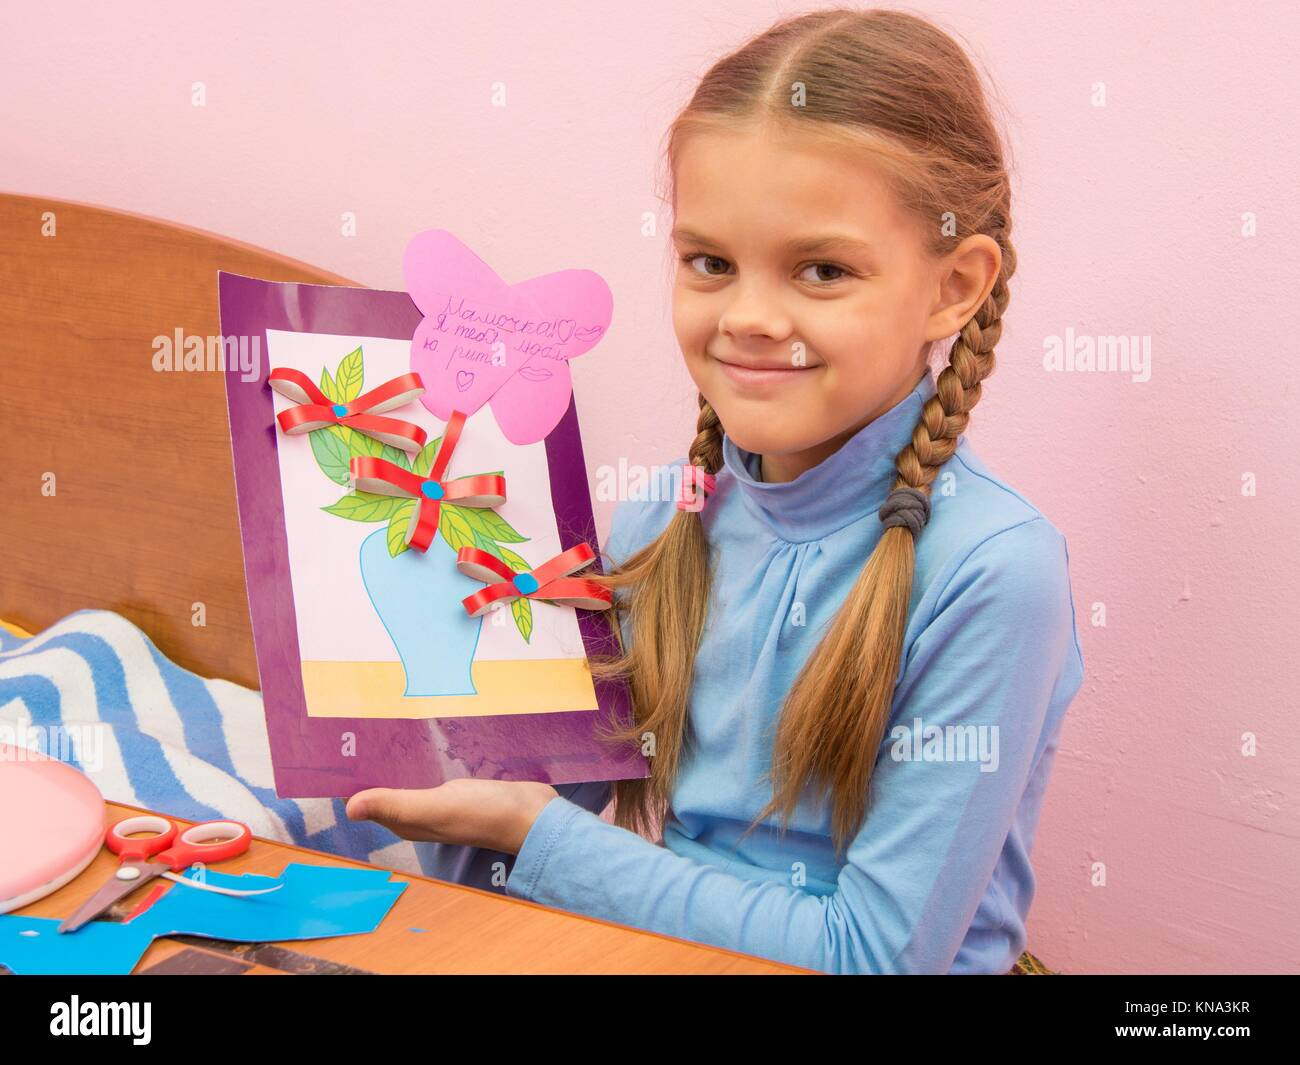 The girl made a birthday card for mom on Mothers Day. Stock Photo